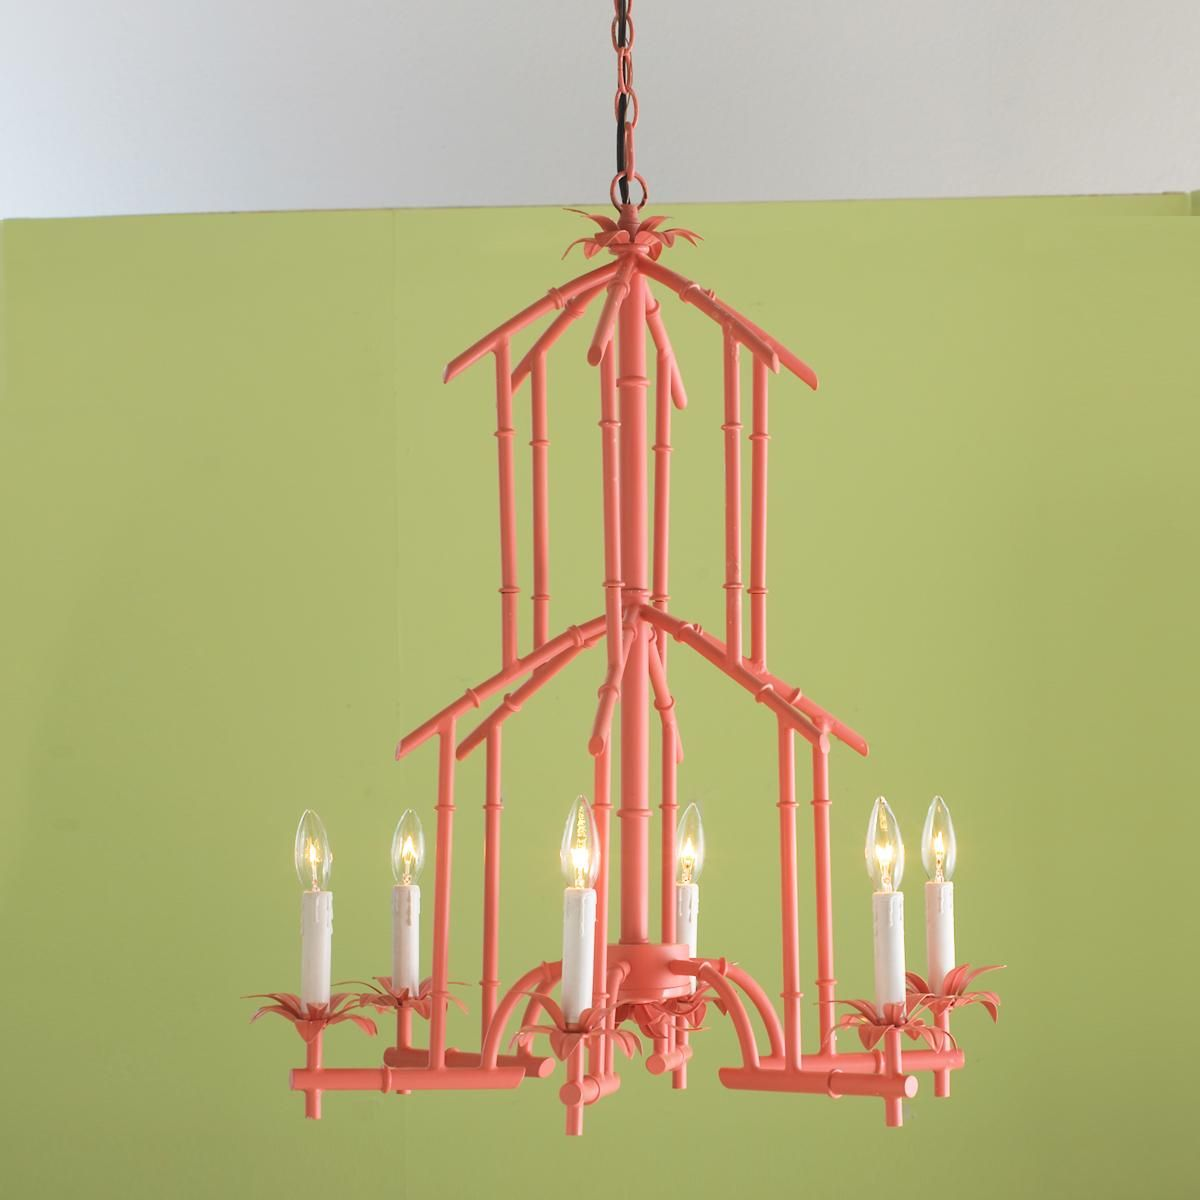 Bamboo Tower Chandelier - 6 Light (6 colors) -Light Fixture for ...